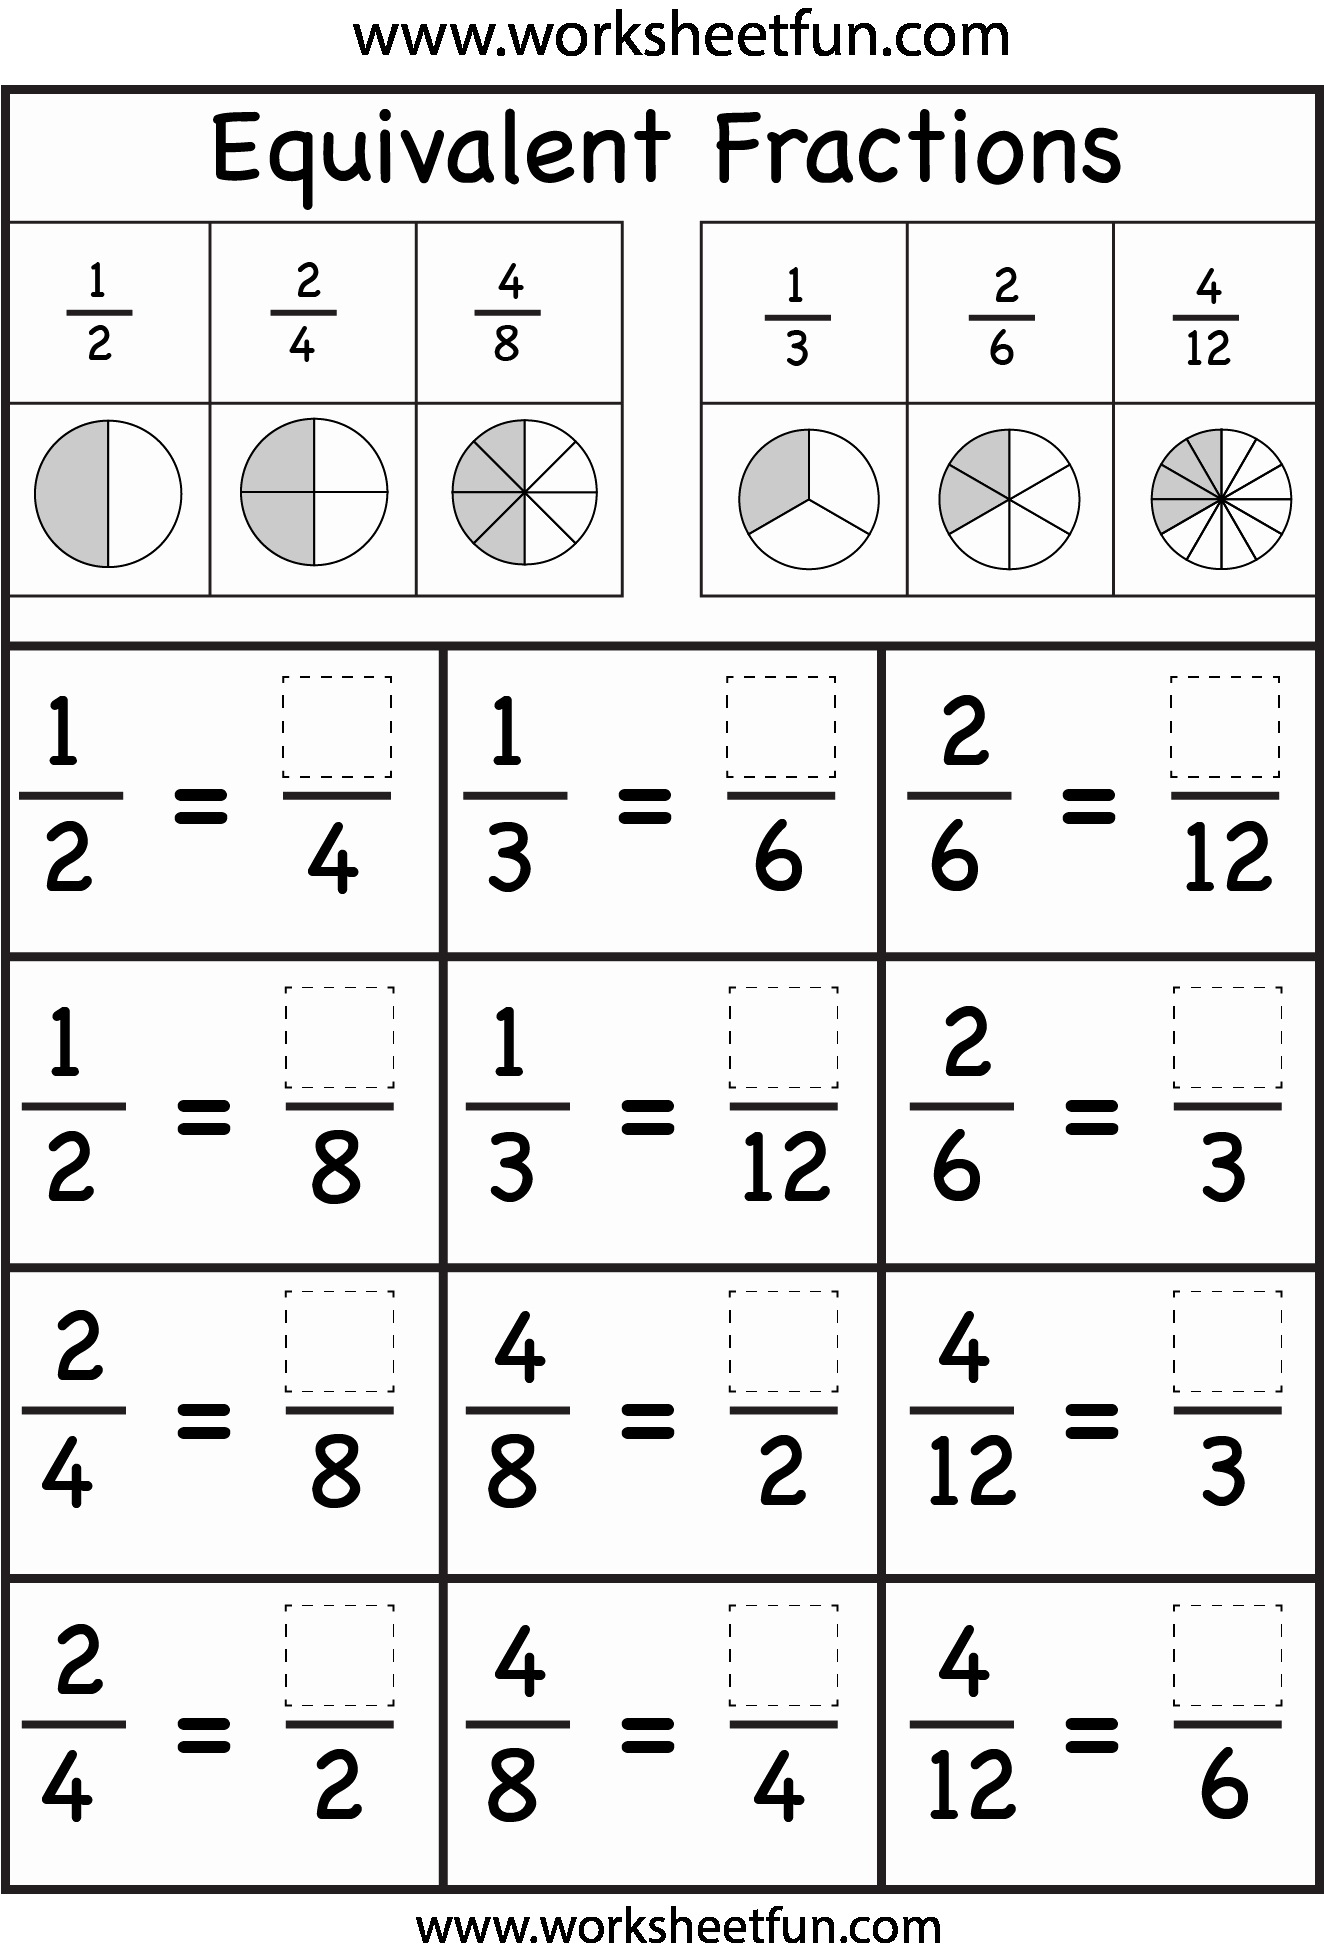 Equivalent Fractions Worksheet Pdf Fresh Equivalent Fractions Worksheet Free Printable Worksheets